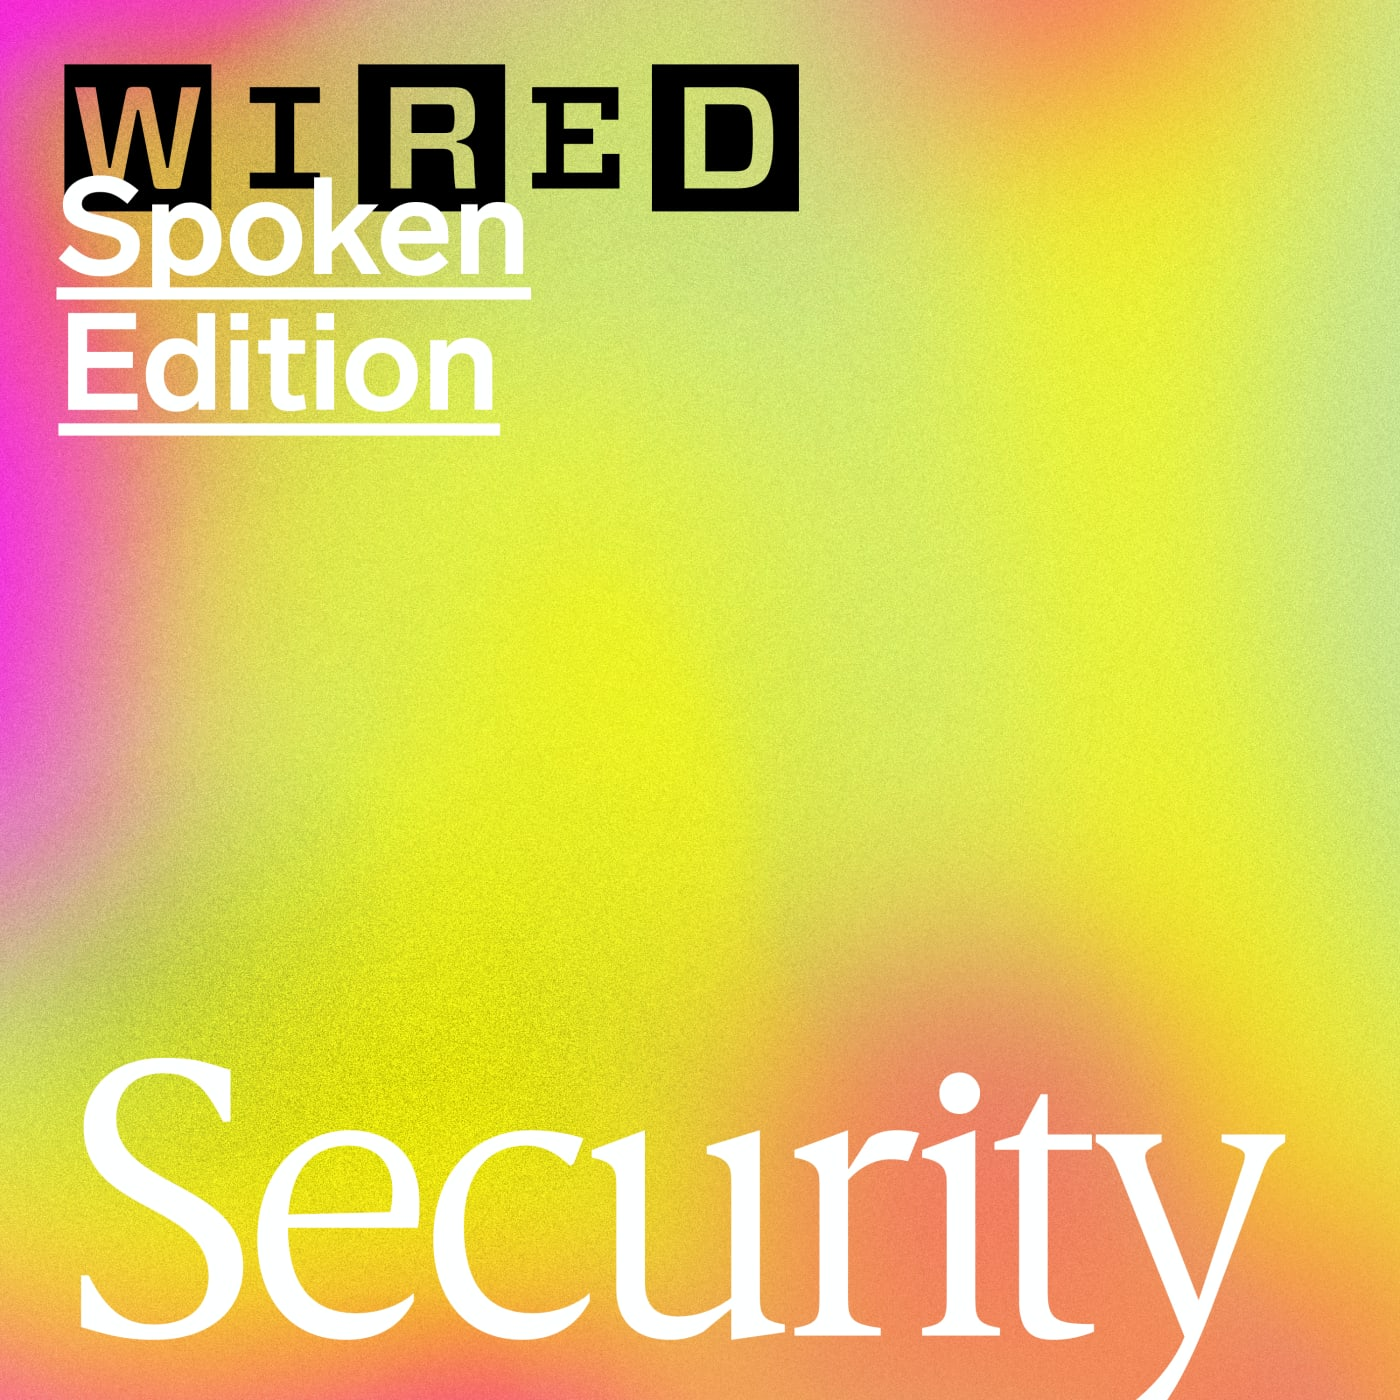 WIRED Security: News, Advice, and More